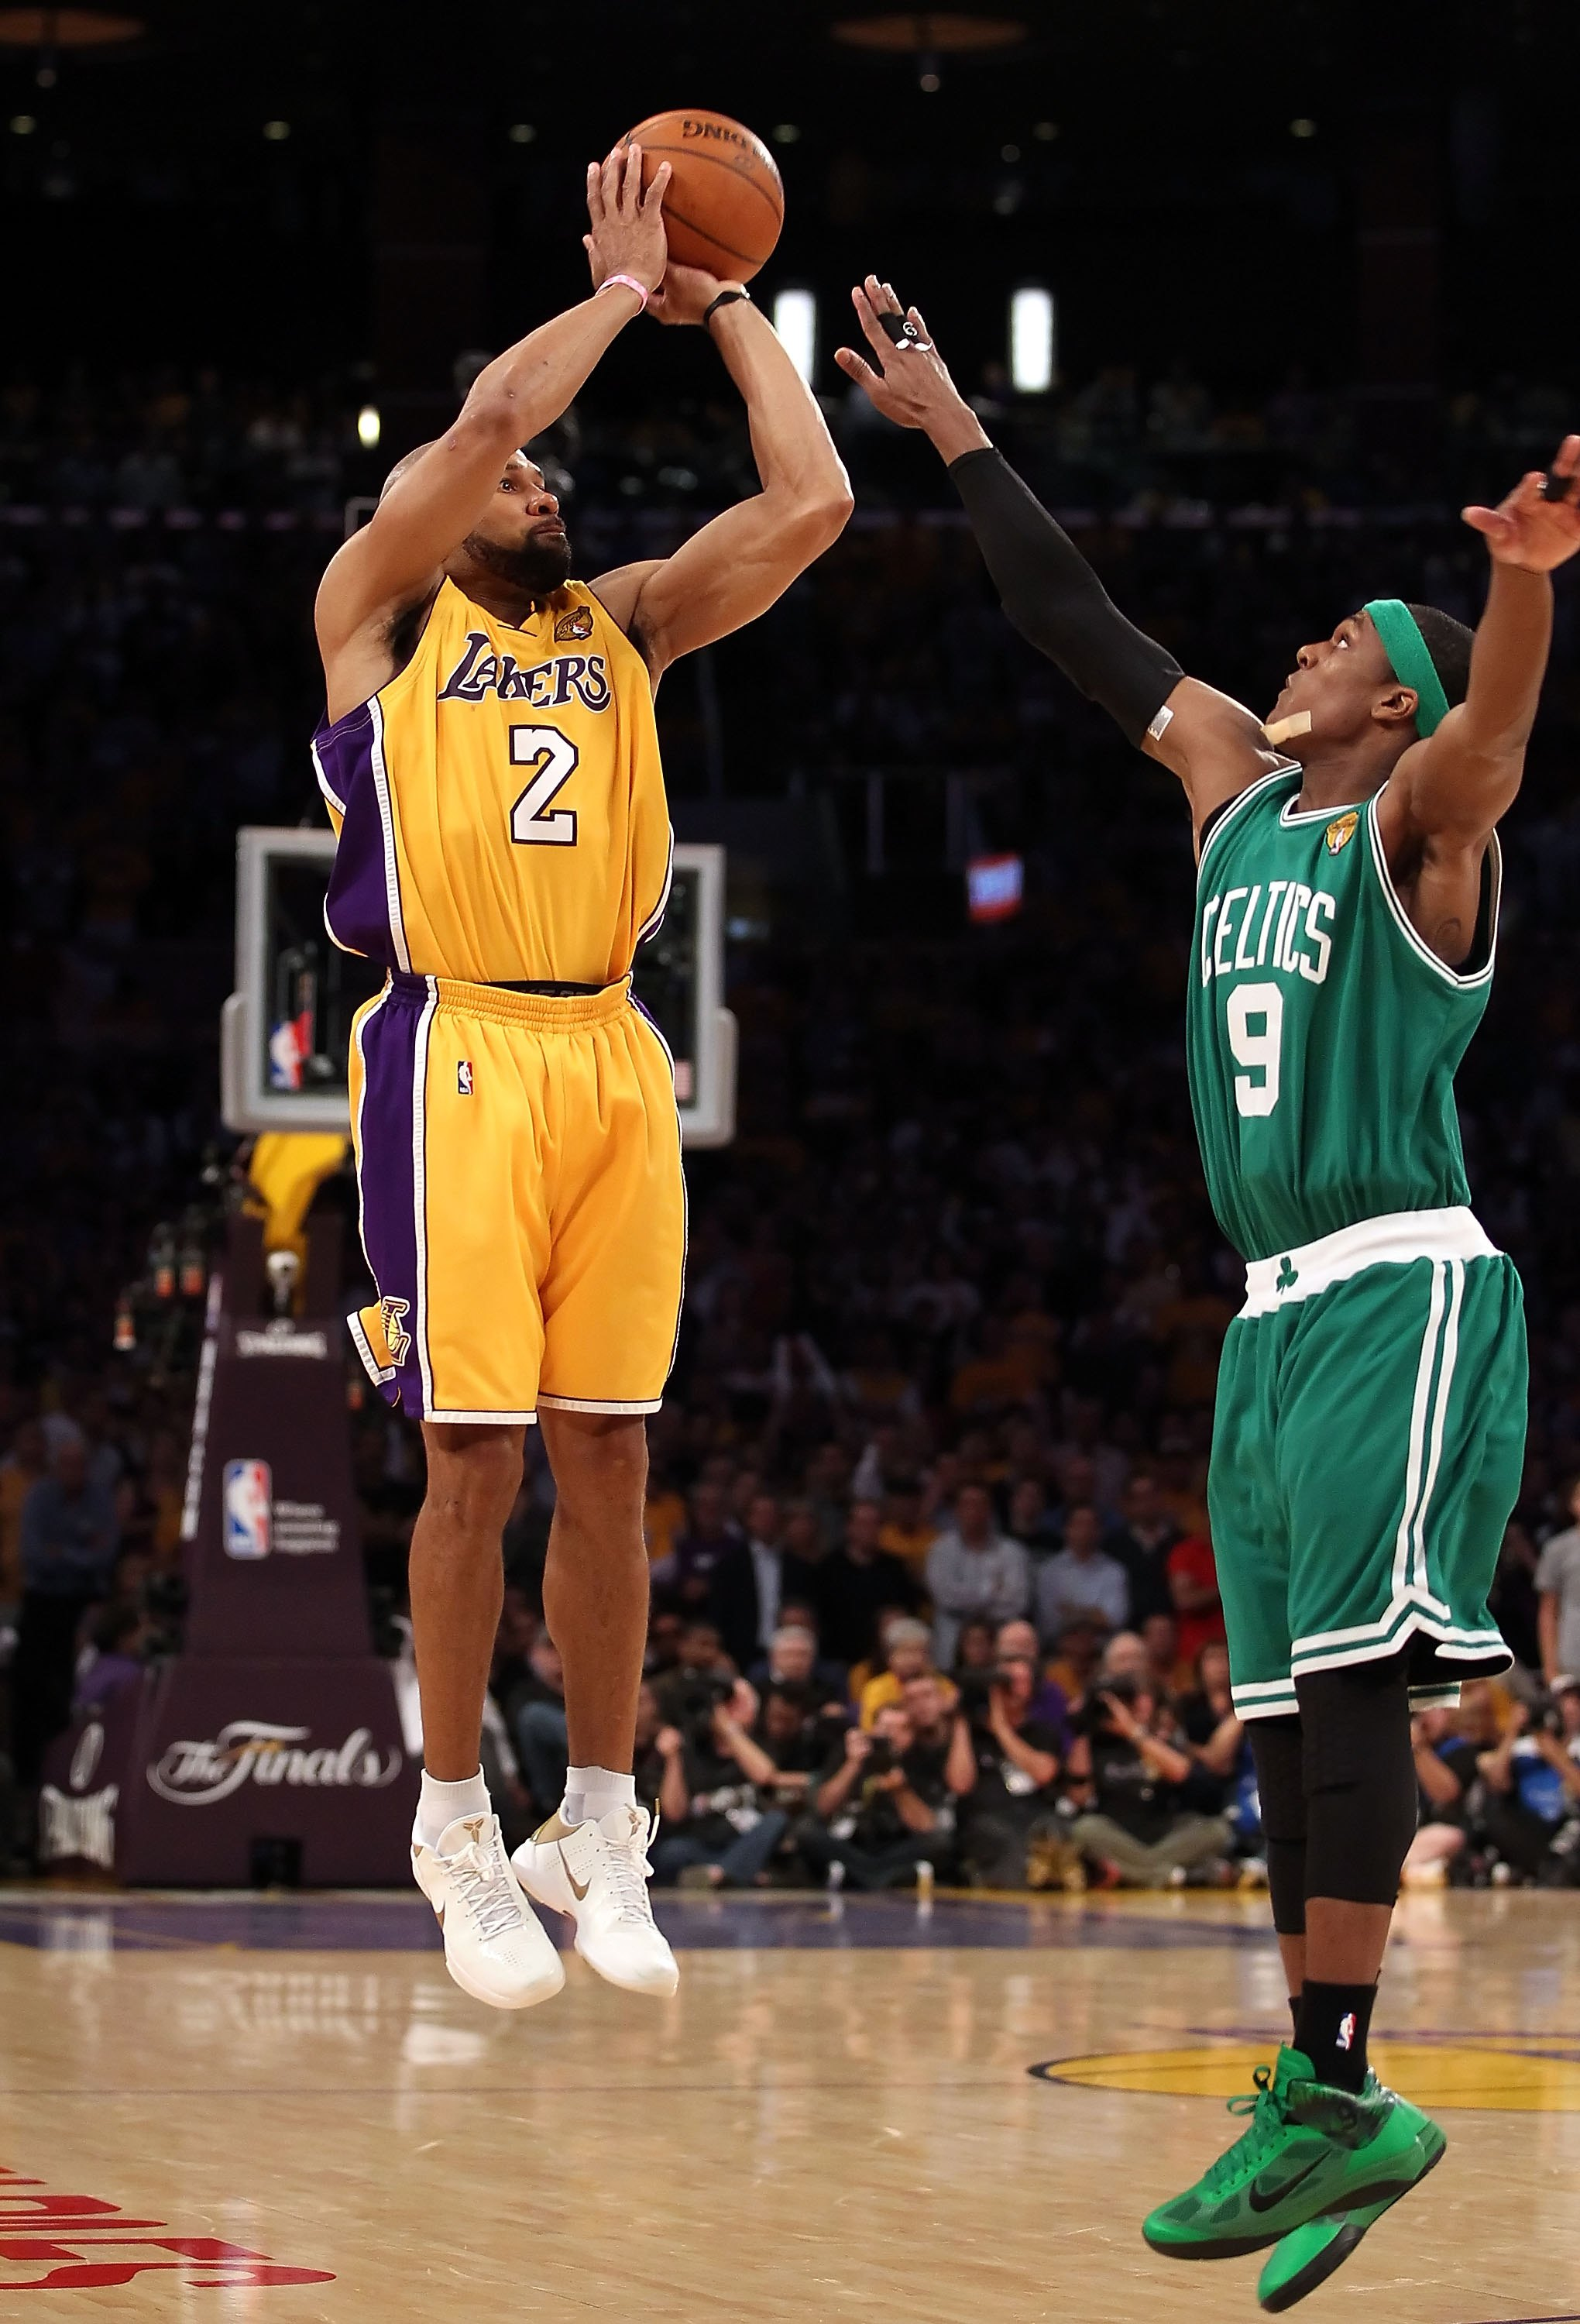 LOS ANGELES, CA - JUNE 17:  Derek Fisher #2 of the Los Angeles Lakers puts up a three point shot over Rajon Rondo #9 of the Boston Celtics in Game Seven of the 2010 NBA Finals at Staples Center on June 17, 2010 in Los Angeles, California.  The Lakers defe